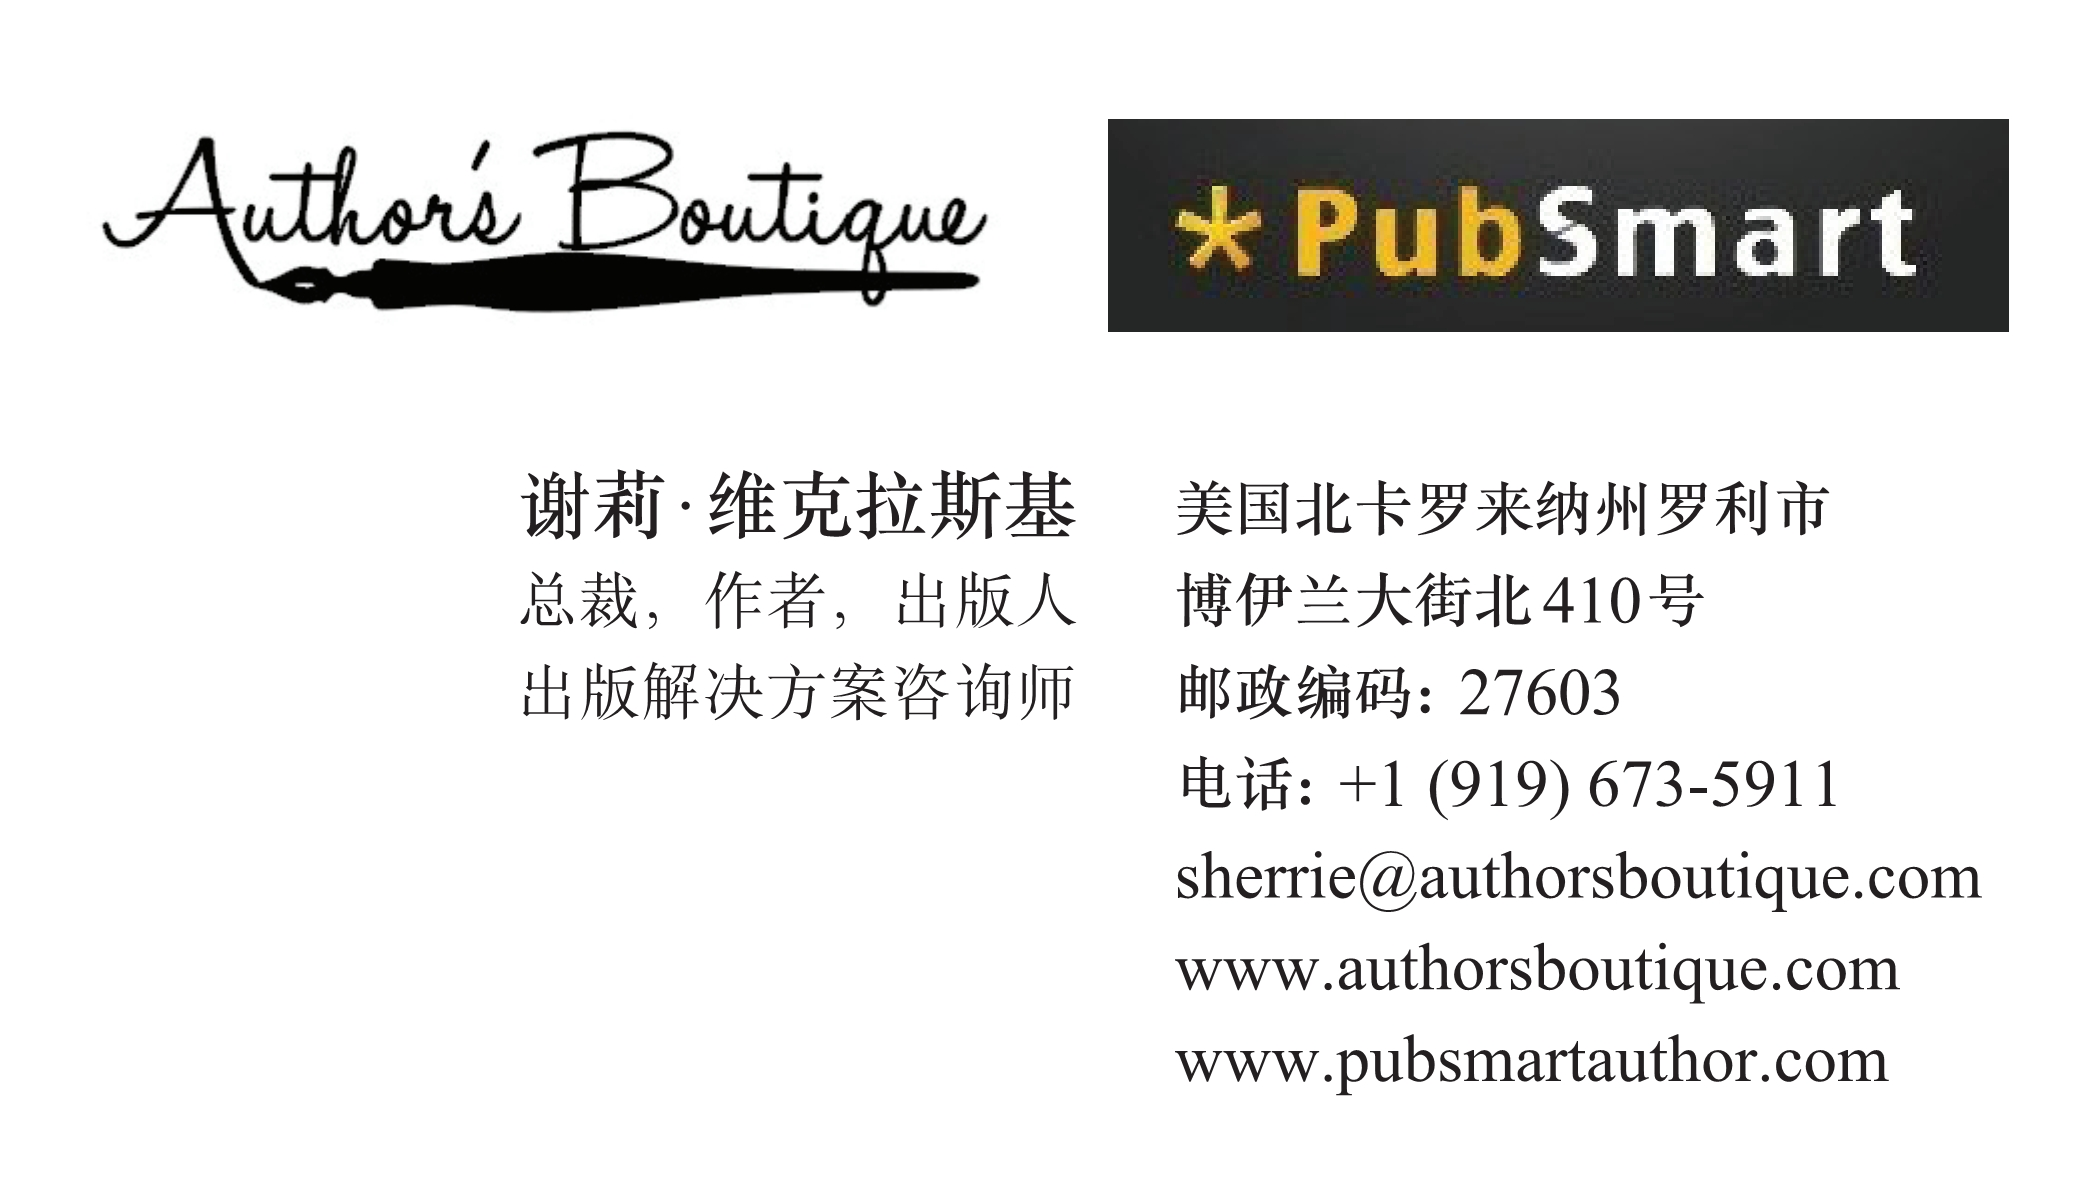 Global etiquette business cards luxe beat magazine for Chinese business card etiquette